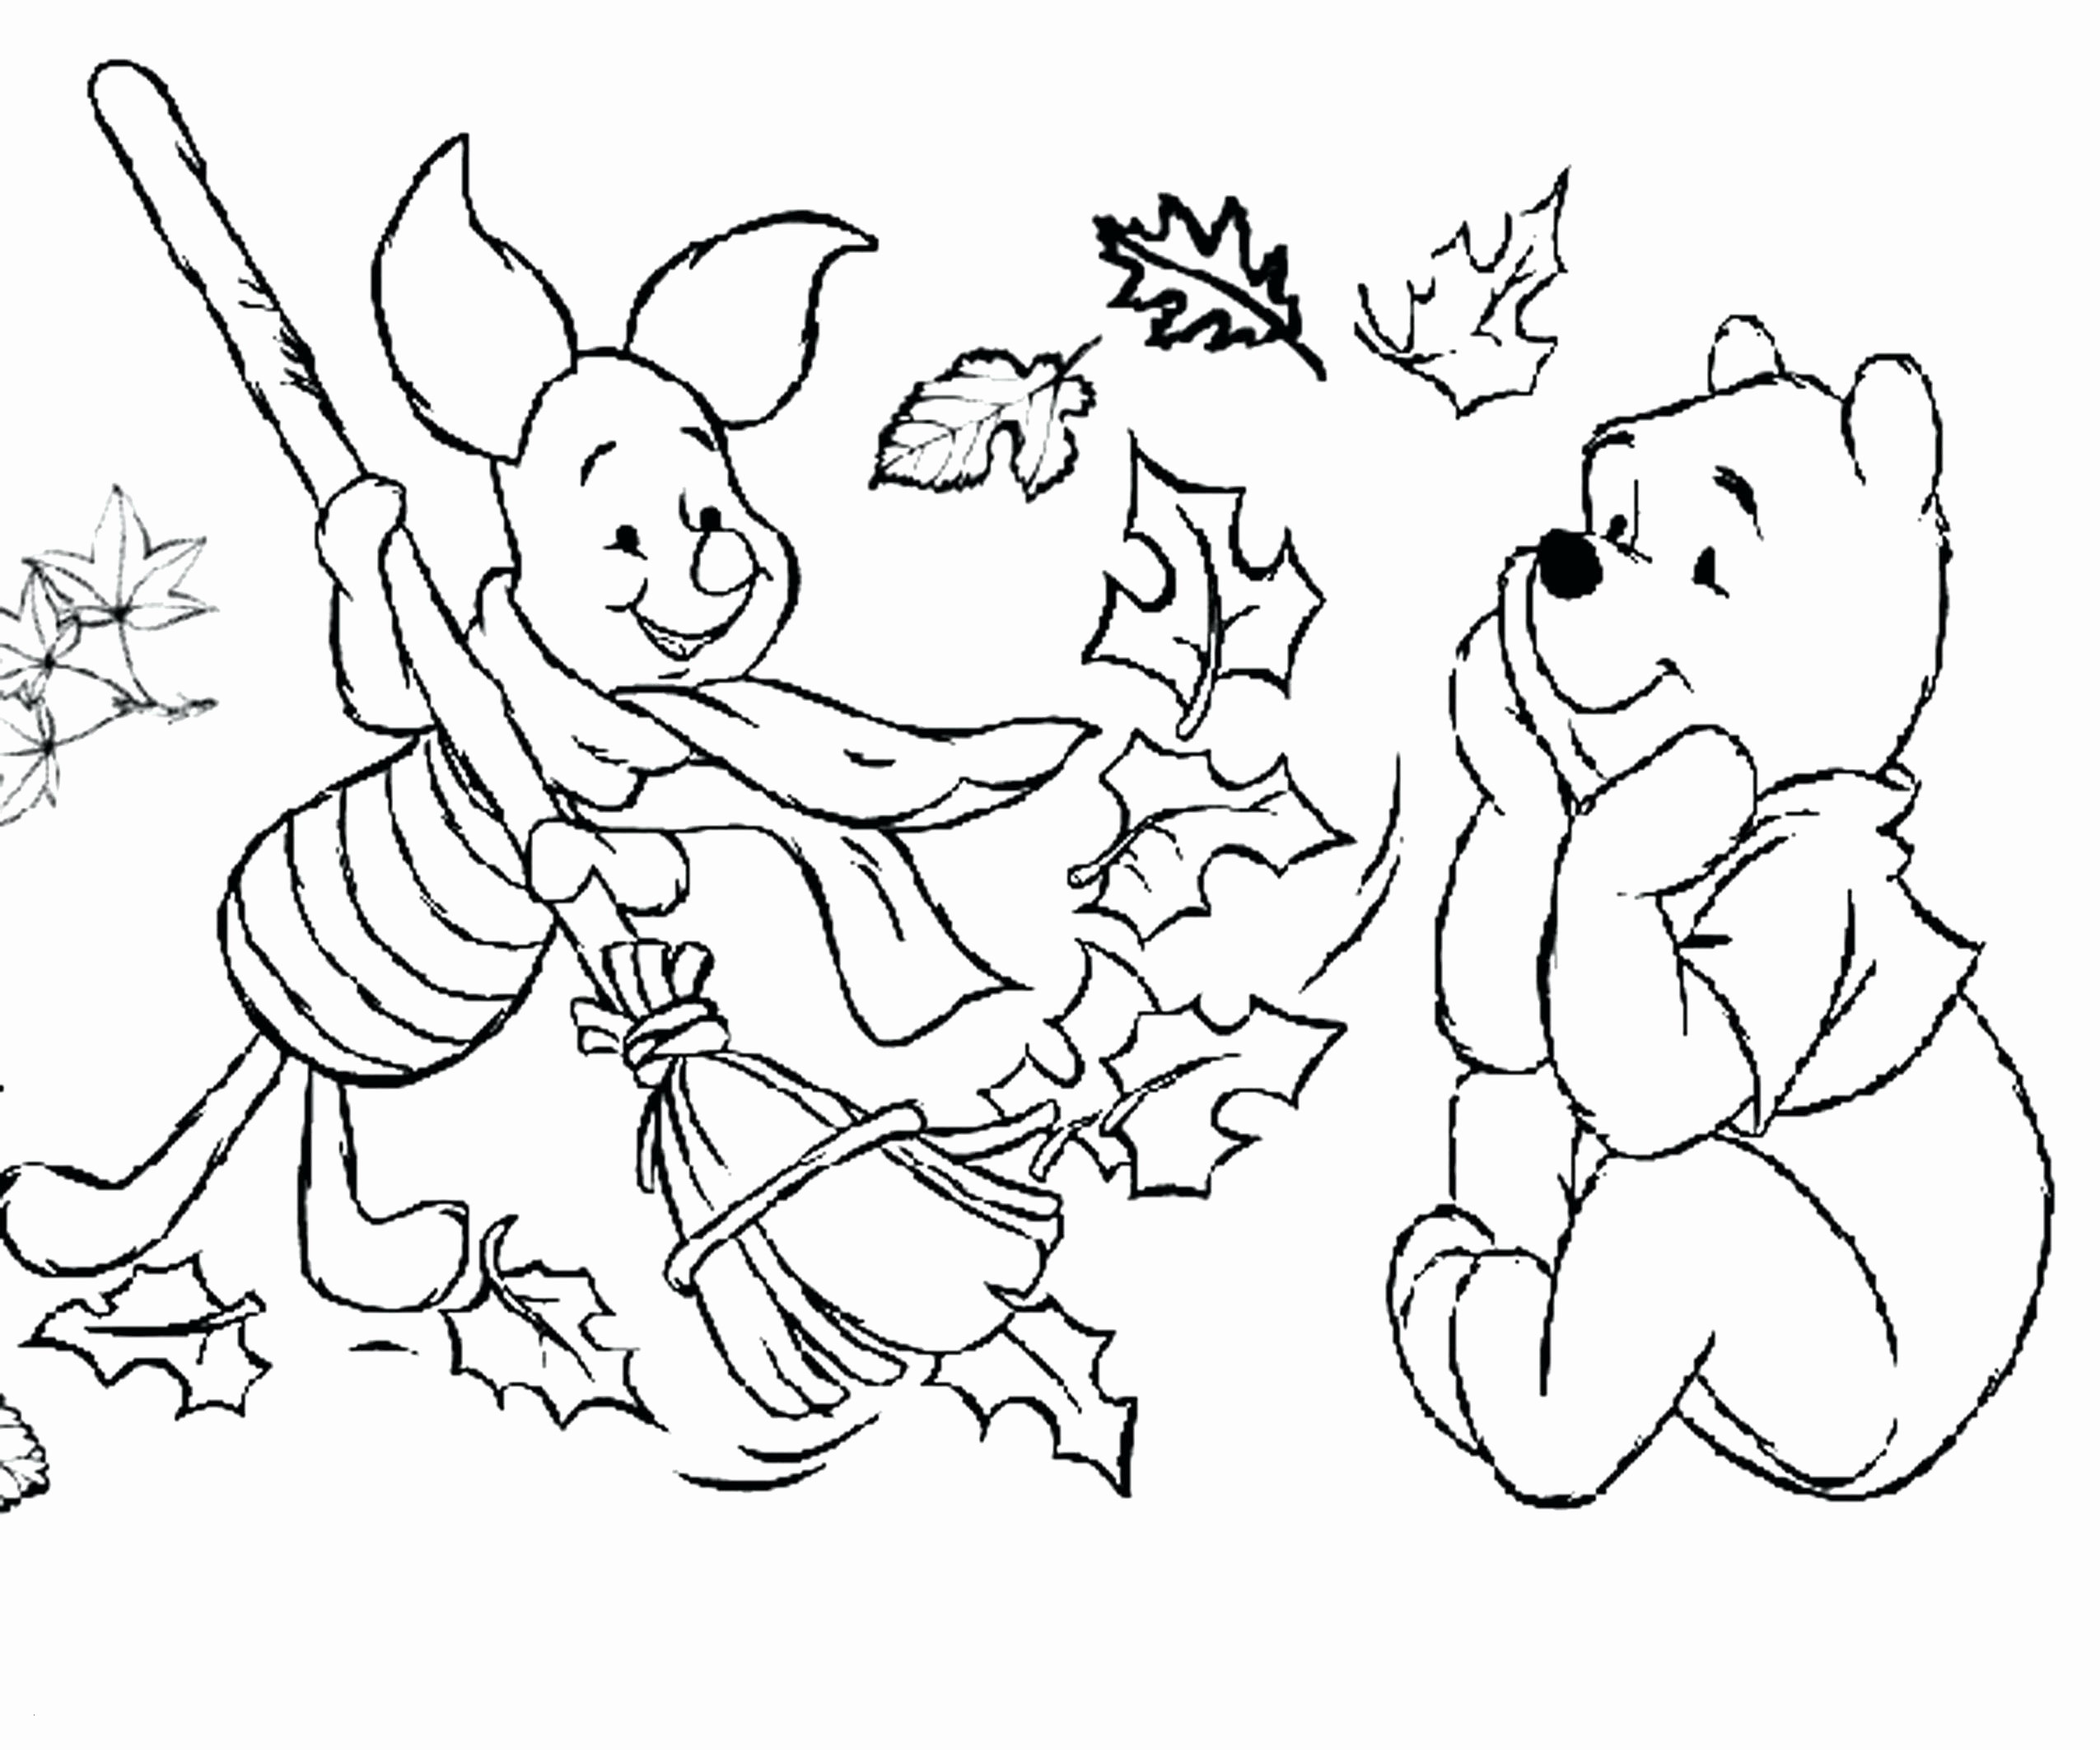 Jesus Loves Children Coloring Pages Download | Free Coloring Sheets